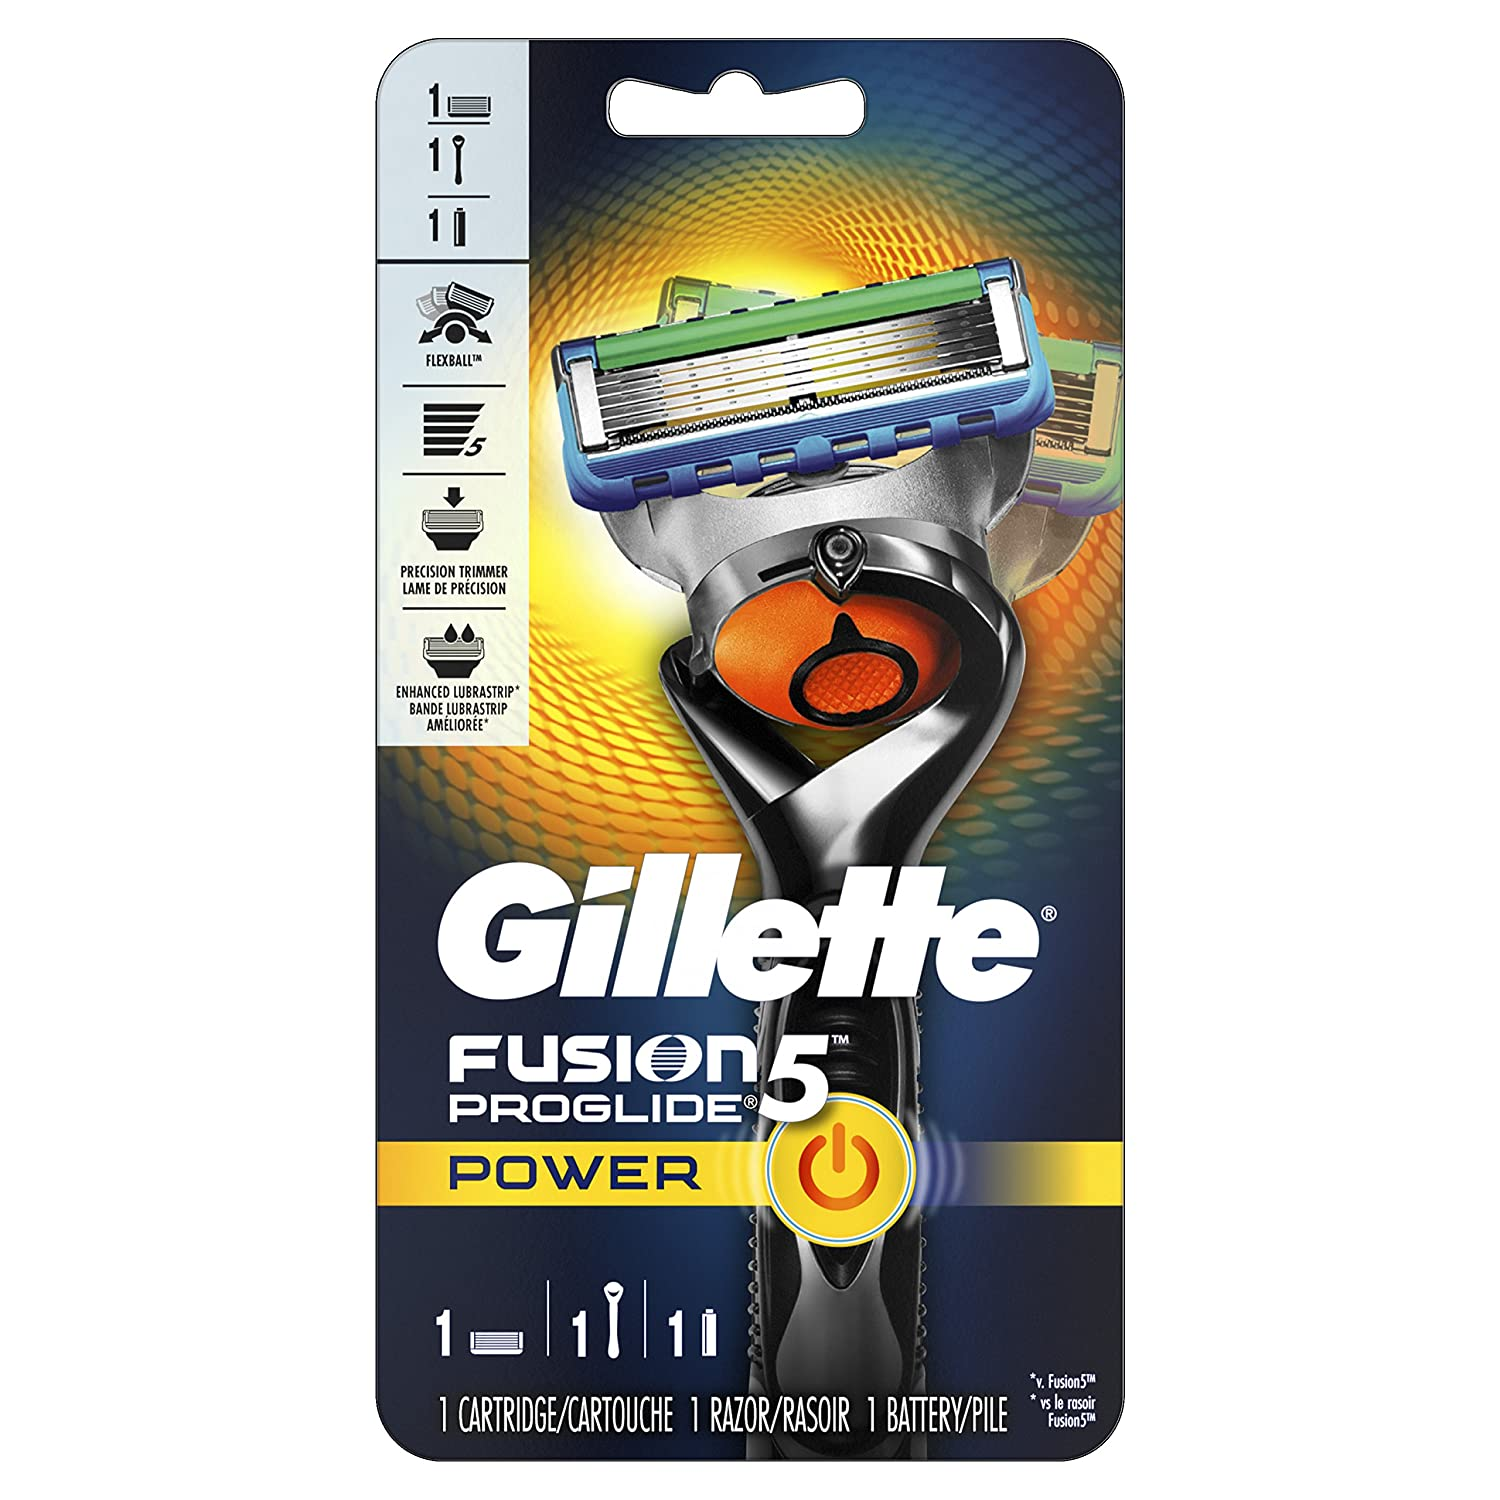 Gillette Fusion5 ProGlide Power Men's Razor with 1 Razor Blade Refill and 1 Battery, Mens Fusion Razors / Blades Procter and Gamble